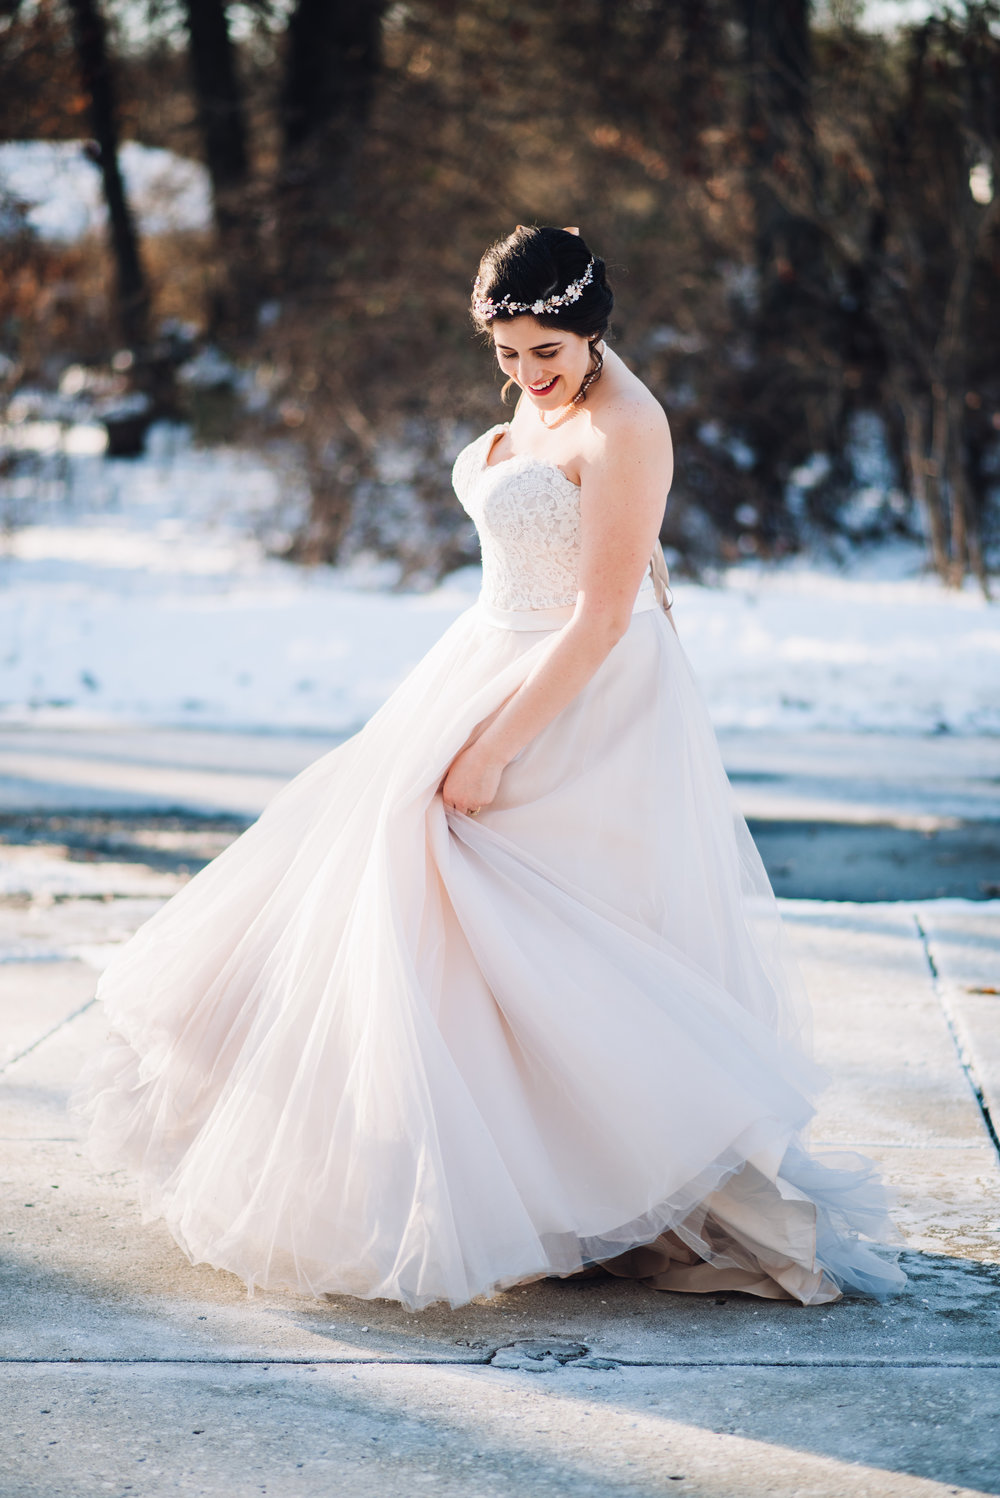 Bride dancing in the snow